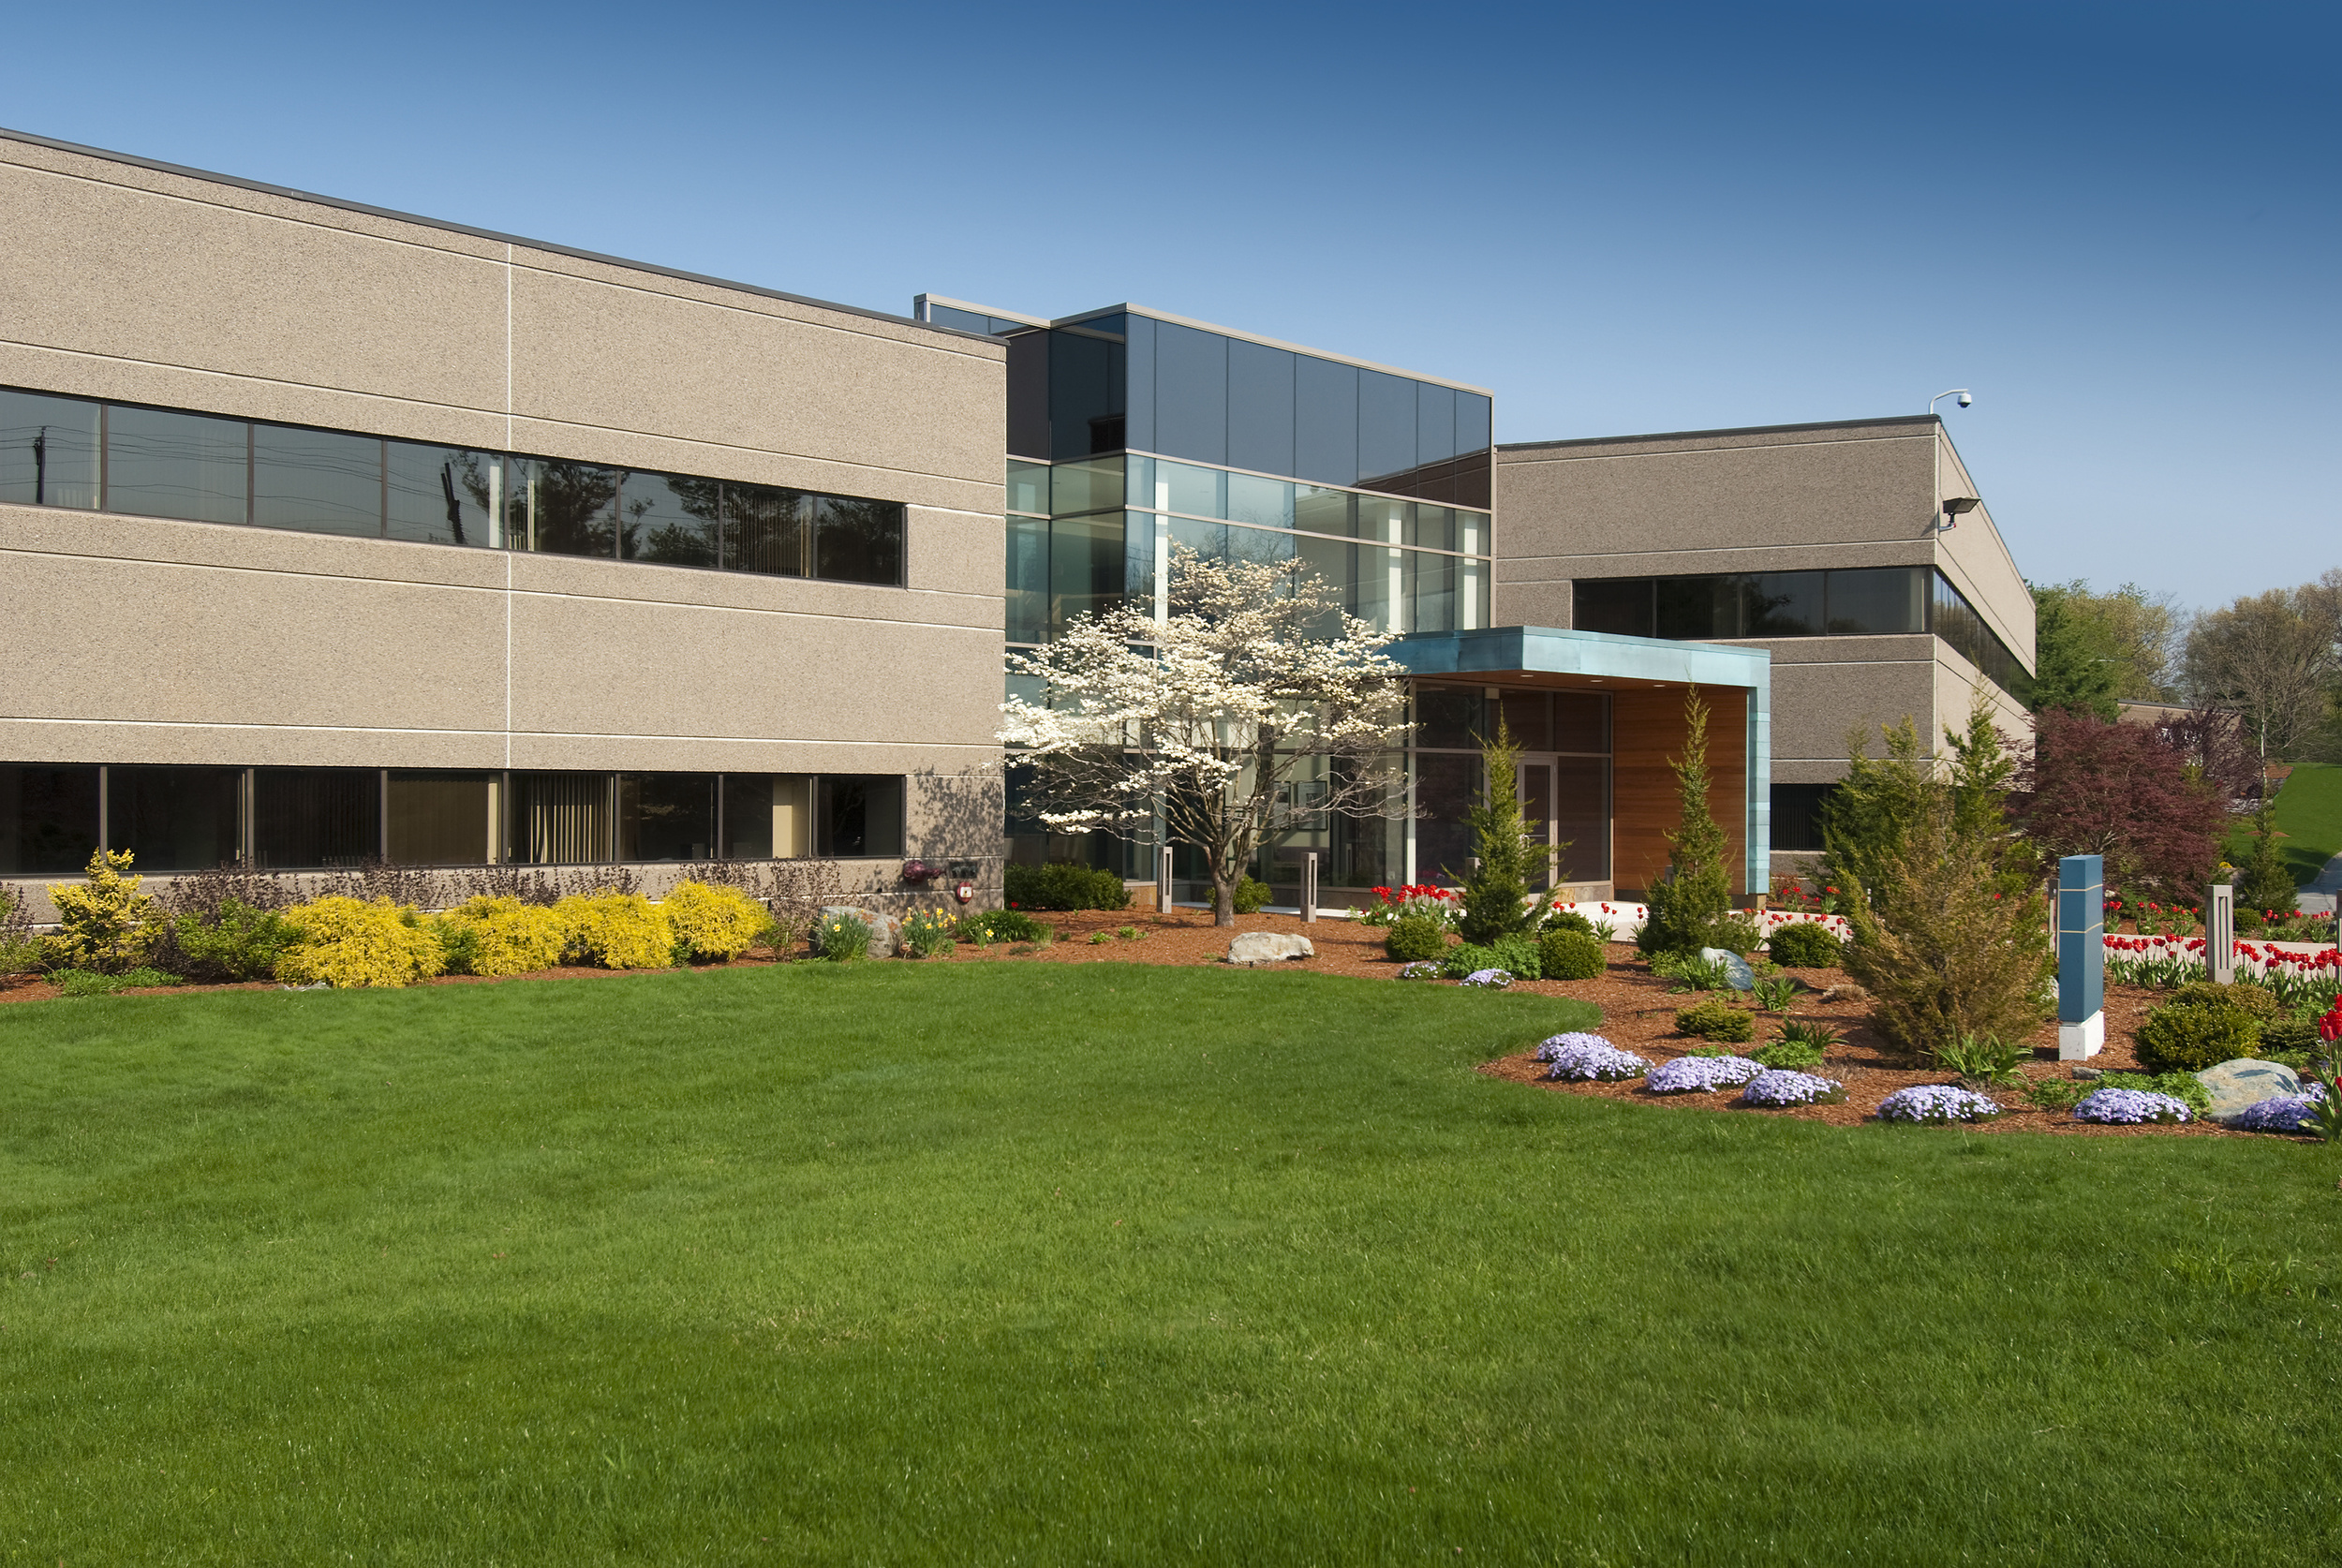 Commercial building landscaped